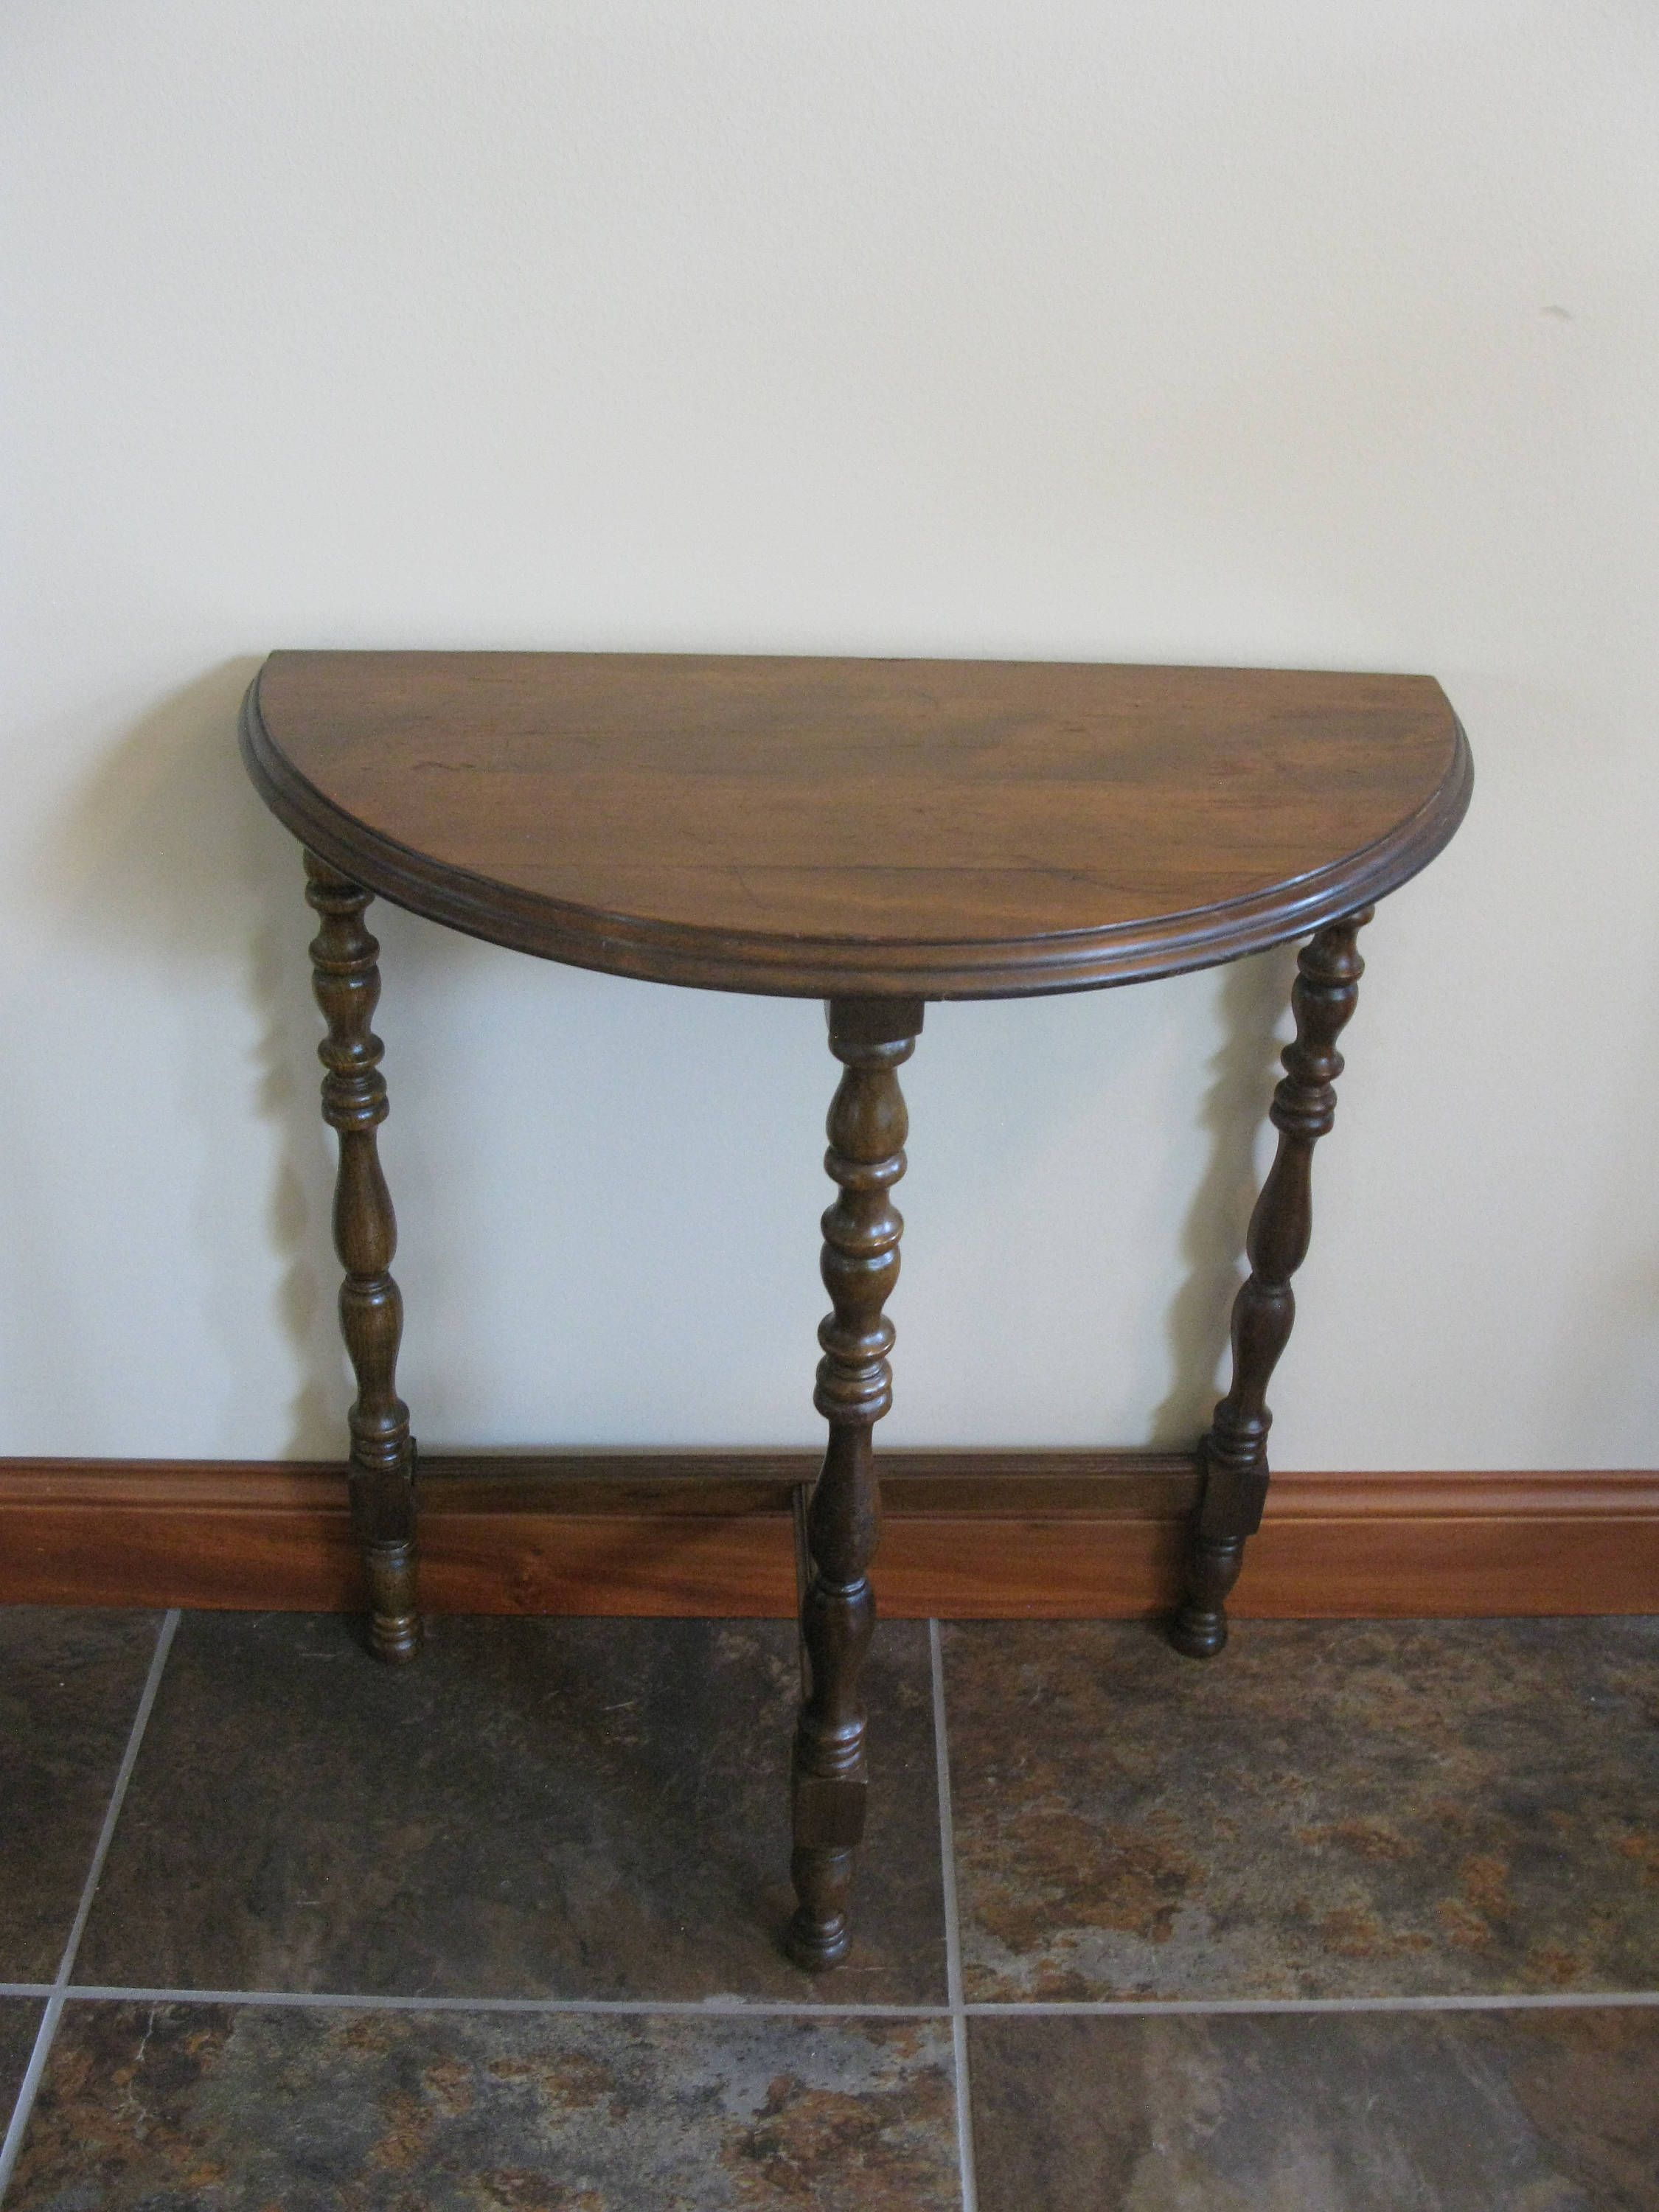 Best Vintage Half Moon Side Table 3 Legged Table Small Wood 400 x 300